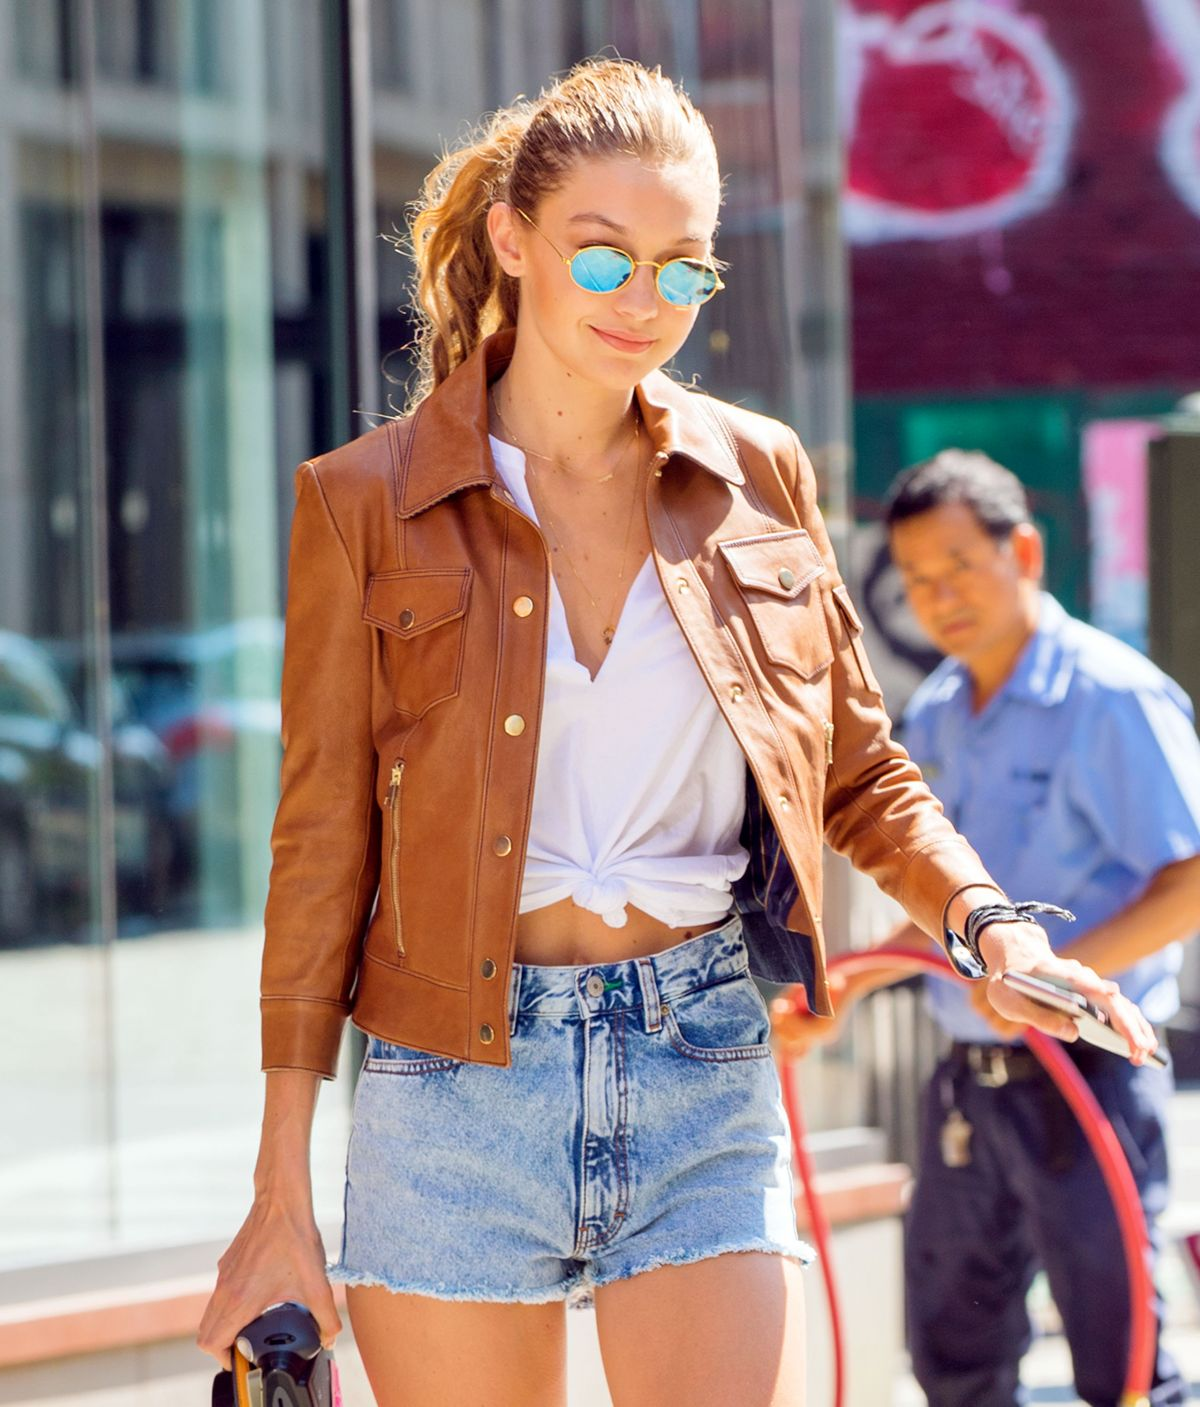 HQ Photos of Gigi Hadid with Sunglasses Out And About In New York